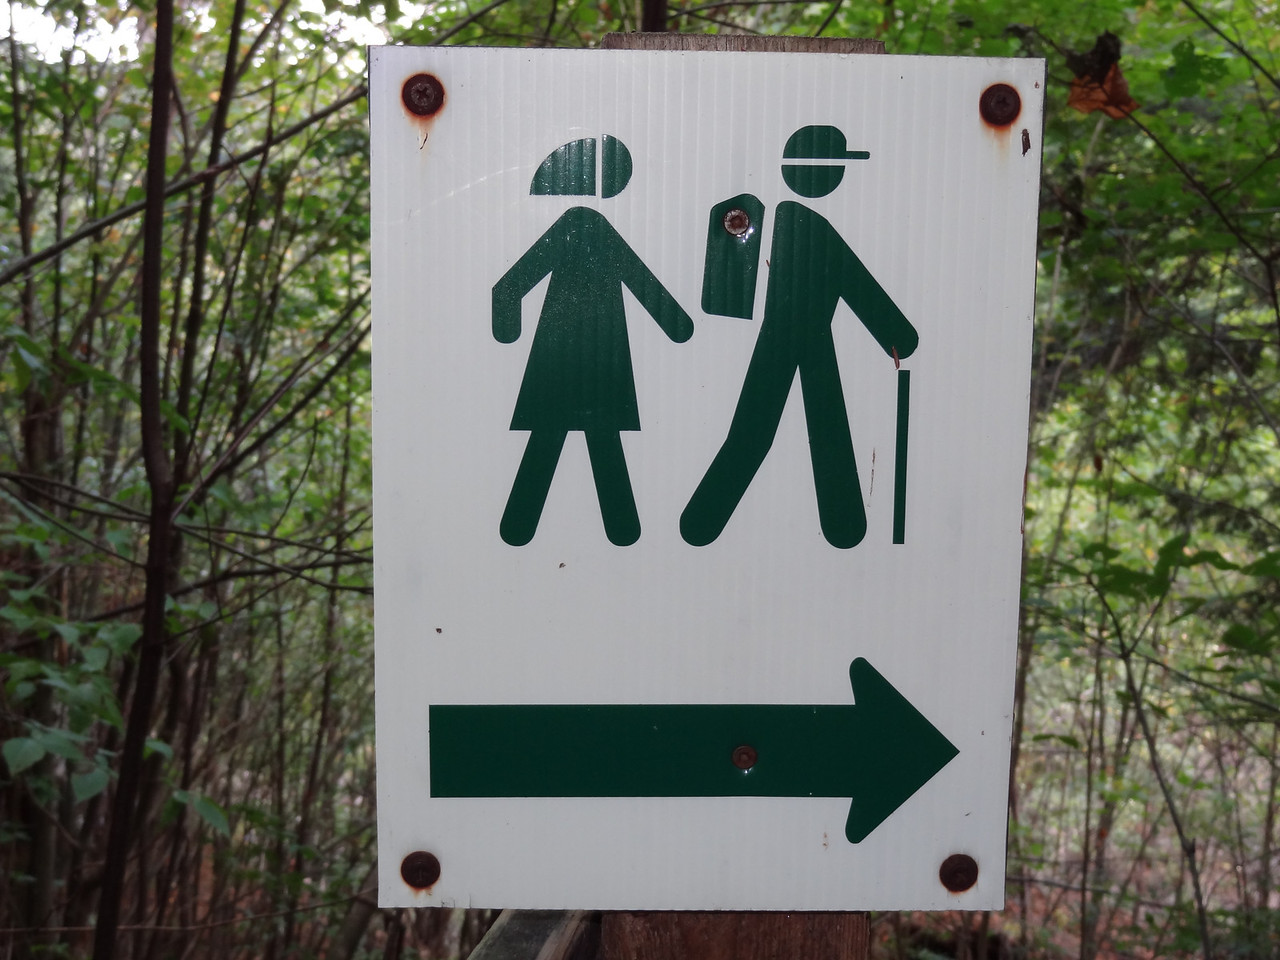 We traveled around a 1.5 mile nature trail back to the car. Anna did not like this clearly sexist sign showing the man carrying all the gear and the woman hiking in her skirt and babushka.